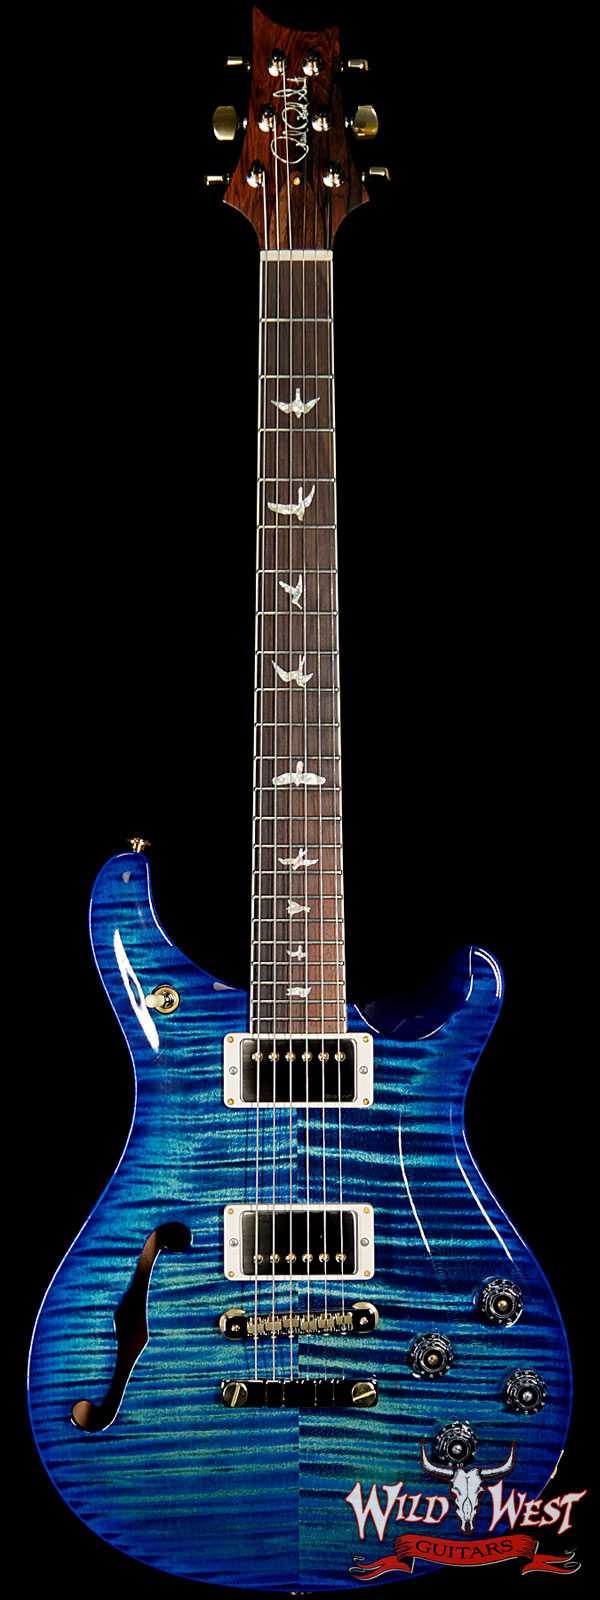 PRS Wild West Guitars 20th Anniversary Limited Run # 29 of 40 Wood Library Artist Package Semi-Hollow McCarty 594 River Blue Burst